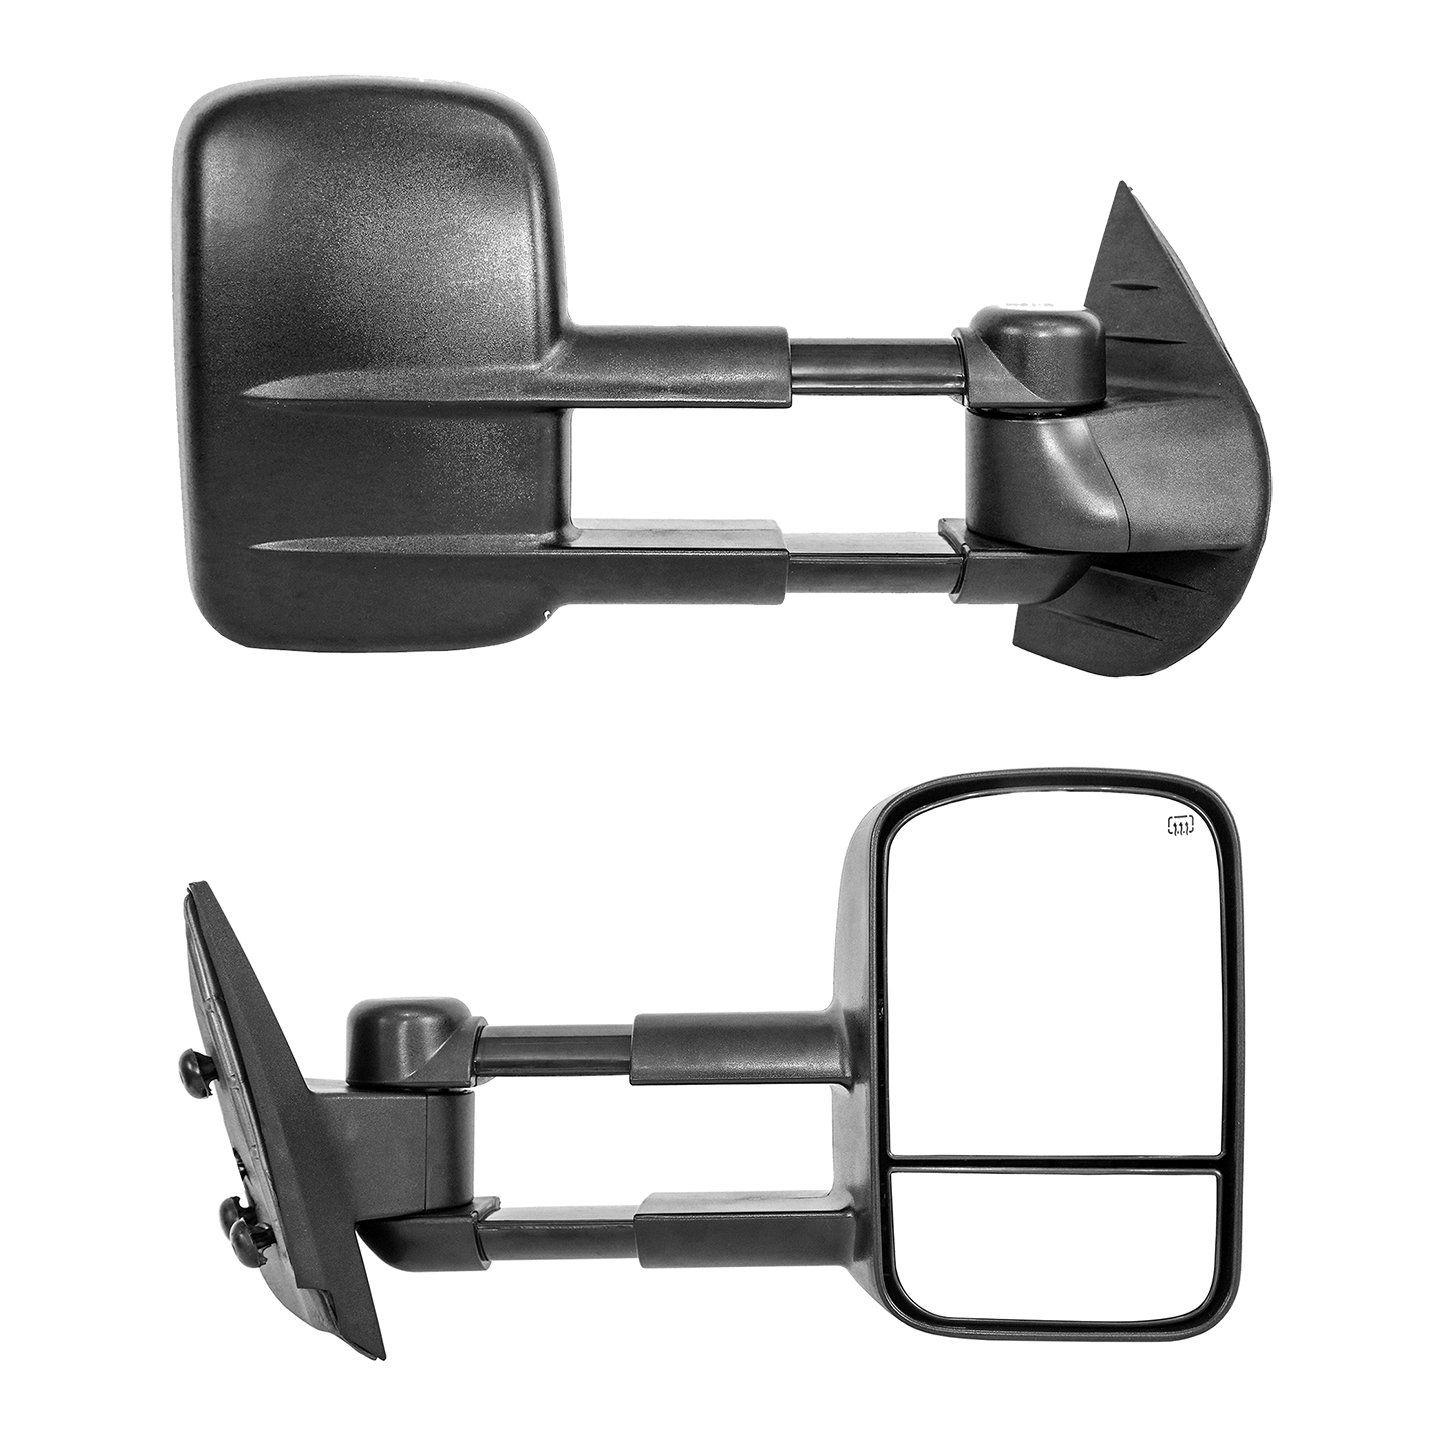 Paragon Telescopic Towing Mirrors for 2014-18 Chevy Silverado//GMC Sierra 1500 /& 2015-18 Silverado//Sierra 2500//3500 Black Pair Set Powered Heated